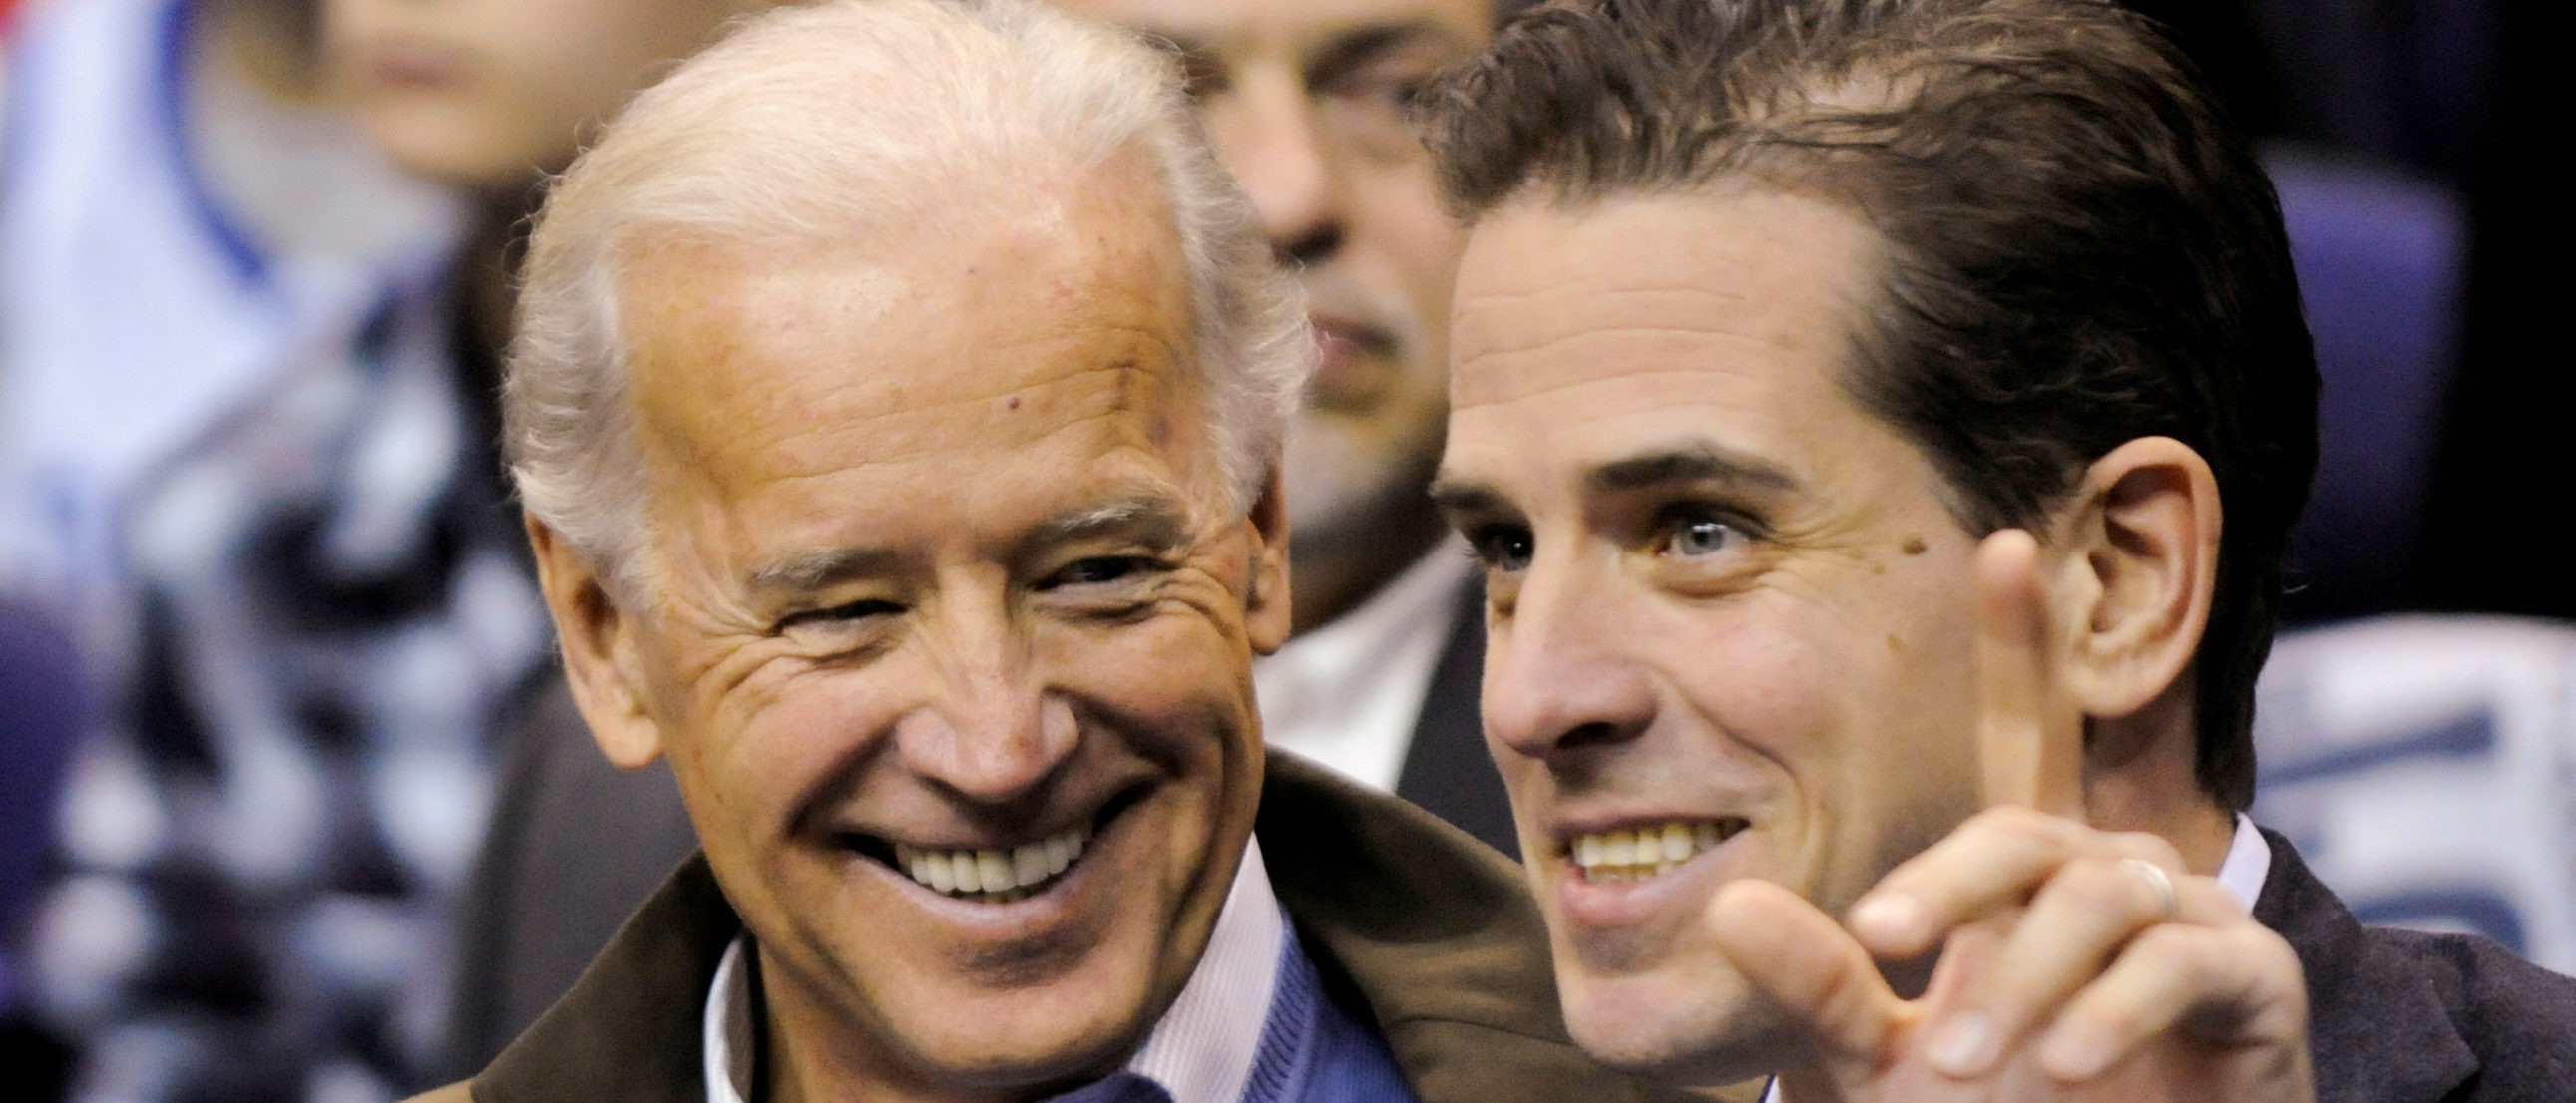 Court Documents In Securities Fraud Case Show Hunter Biden Was Viewed As 'Top Level Politico'